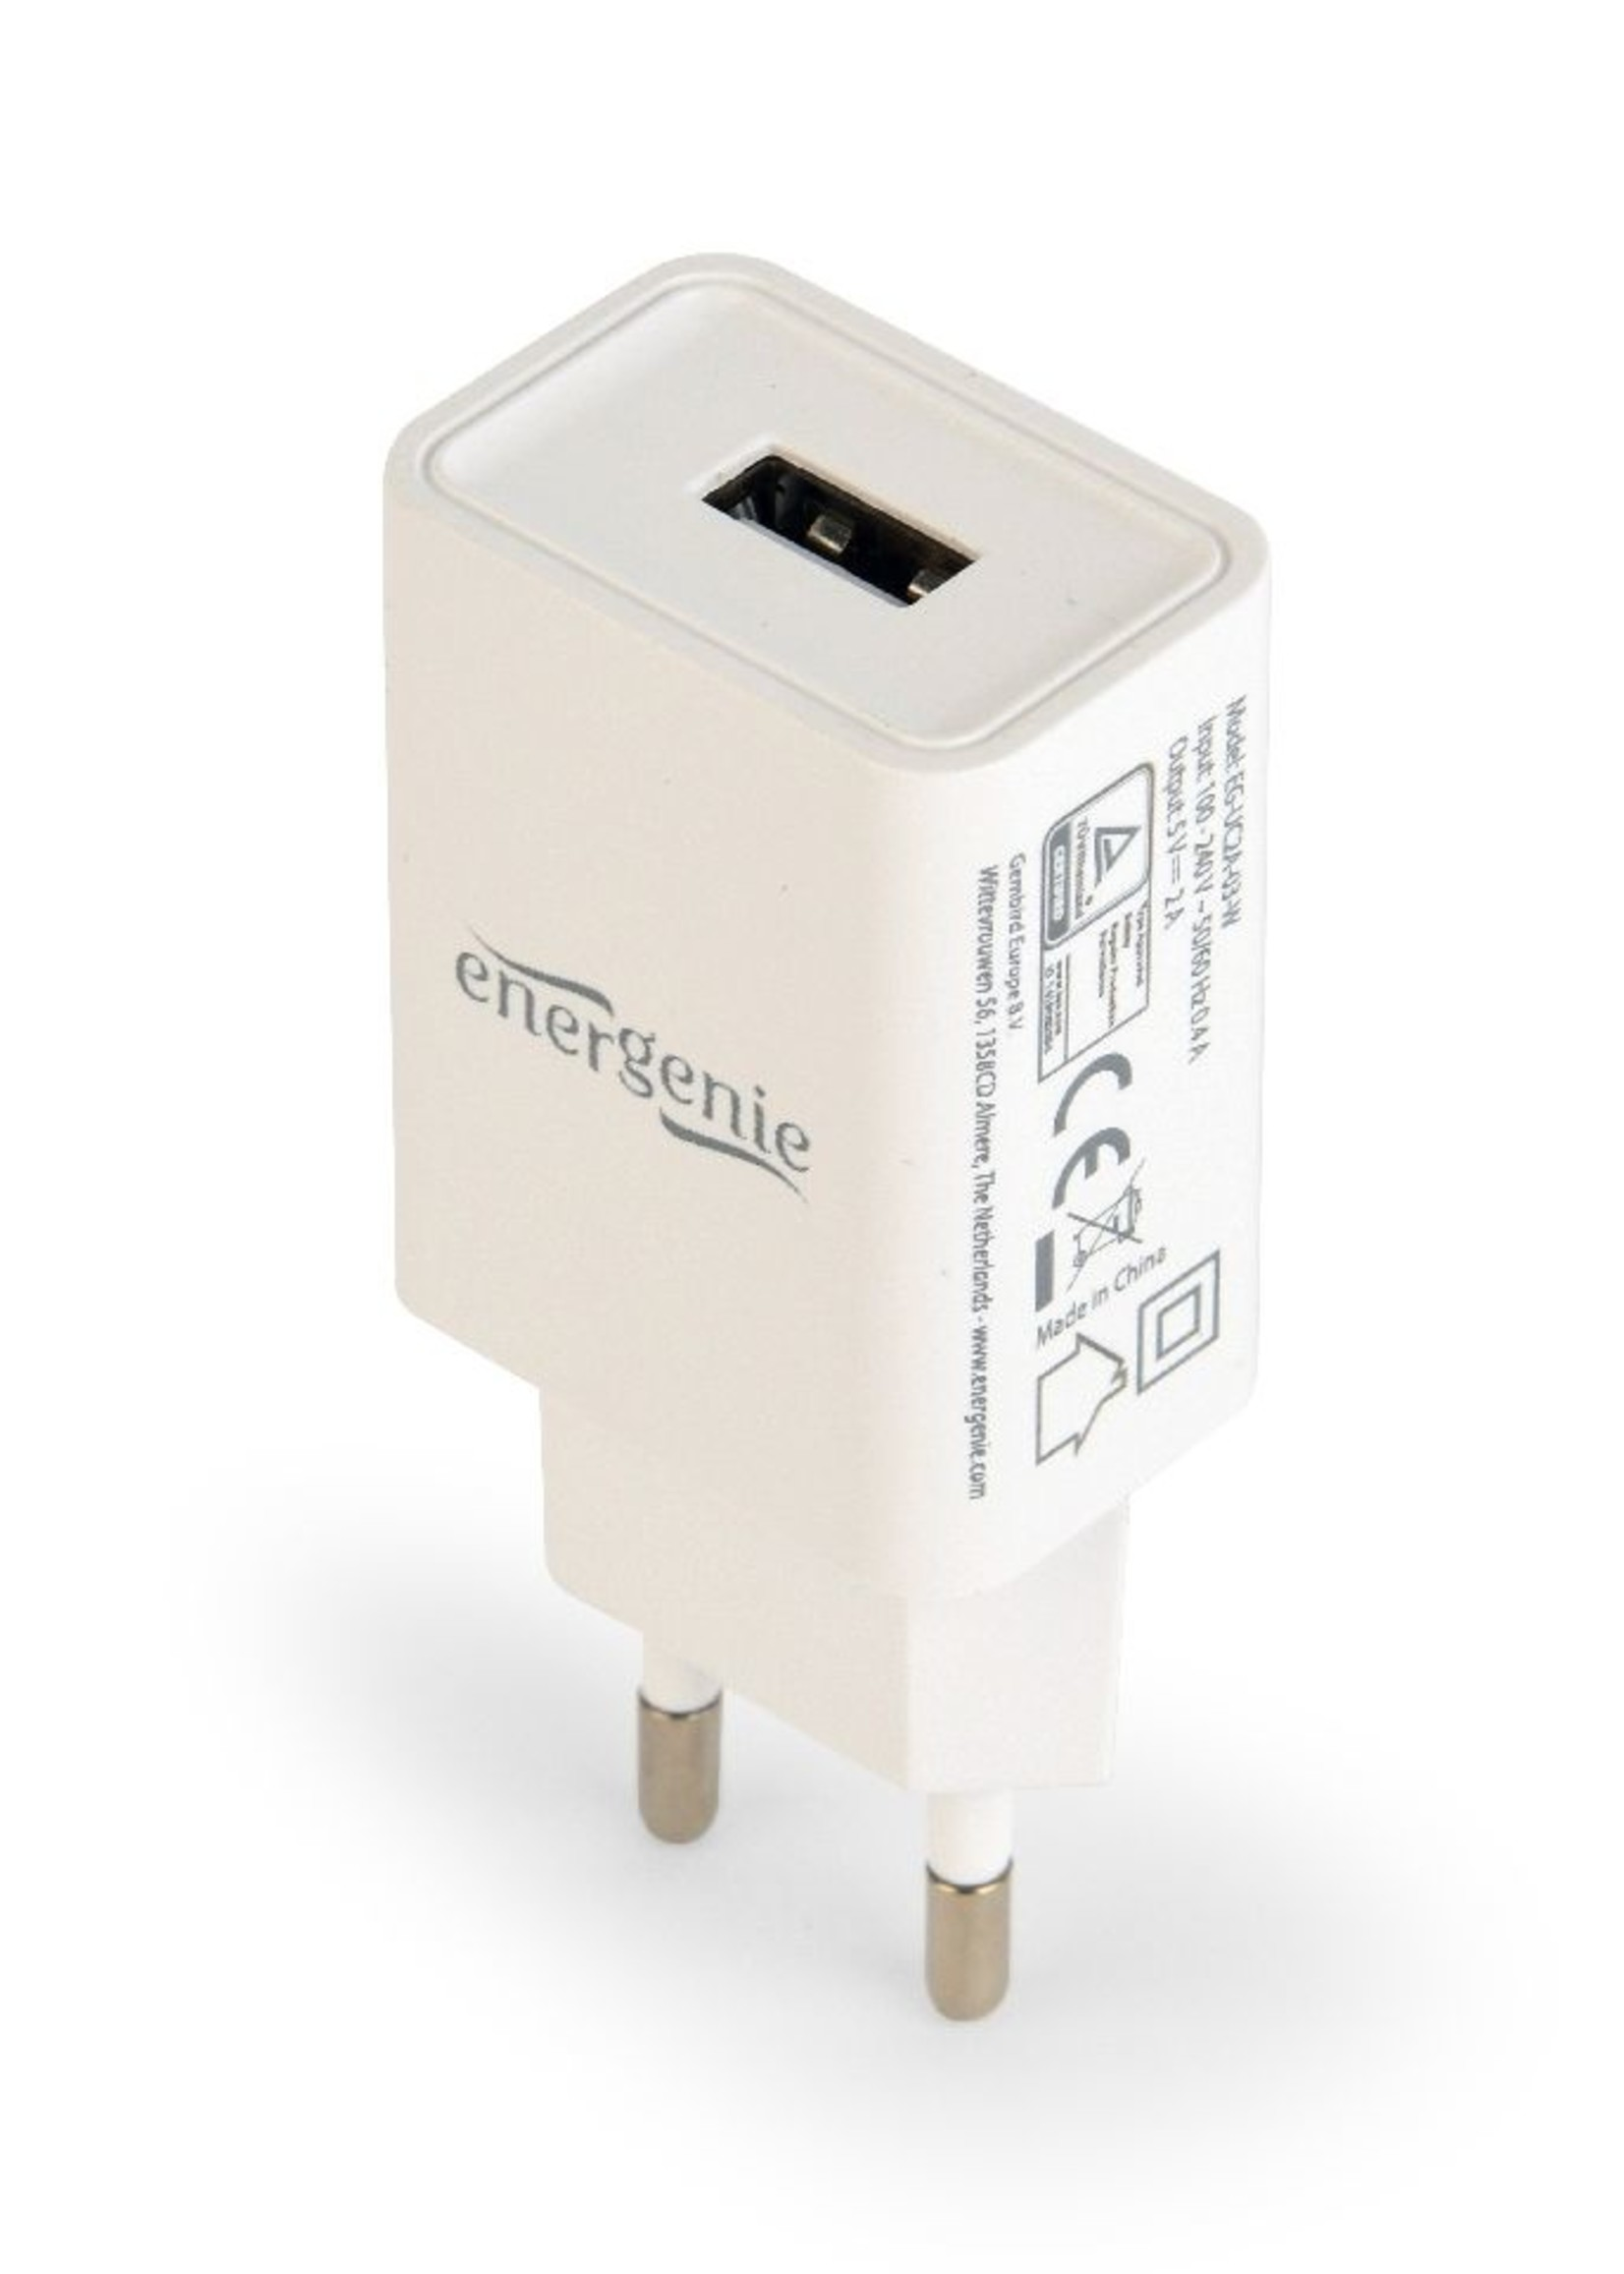 EnerGenie Universele USB lader, 2.1 A, wit